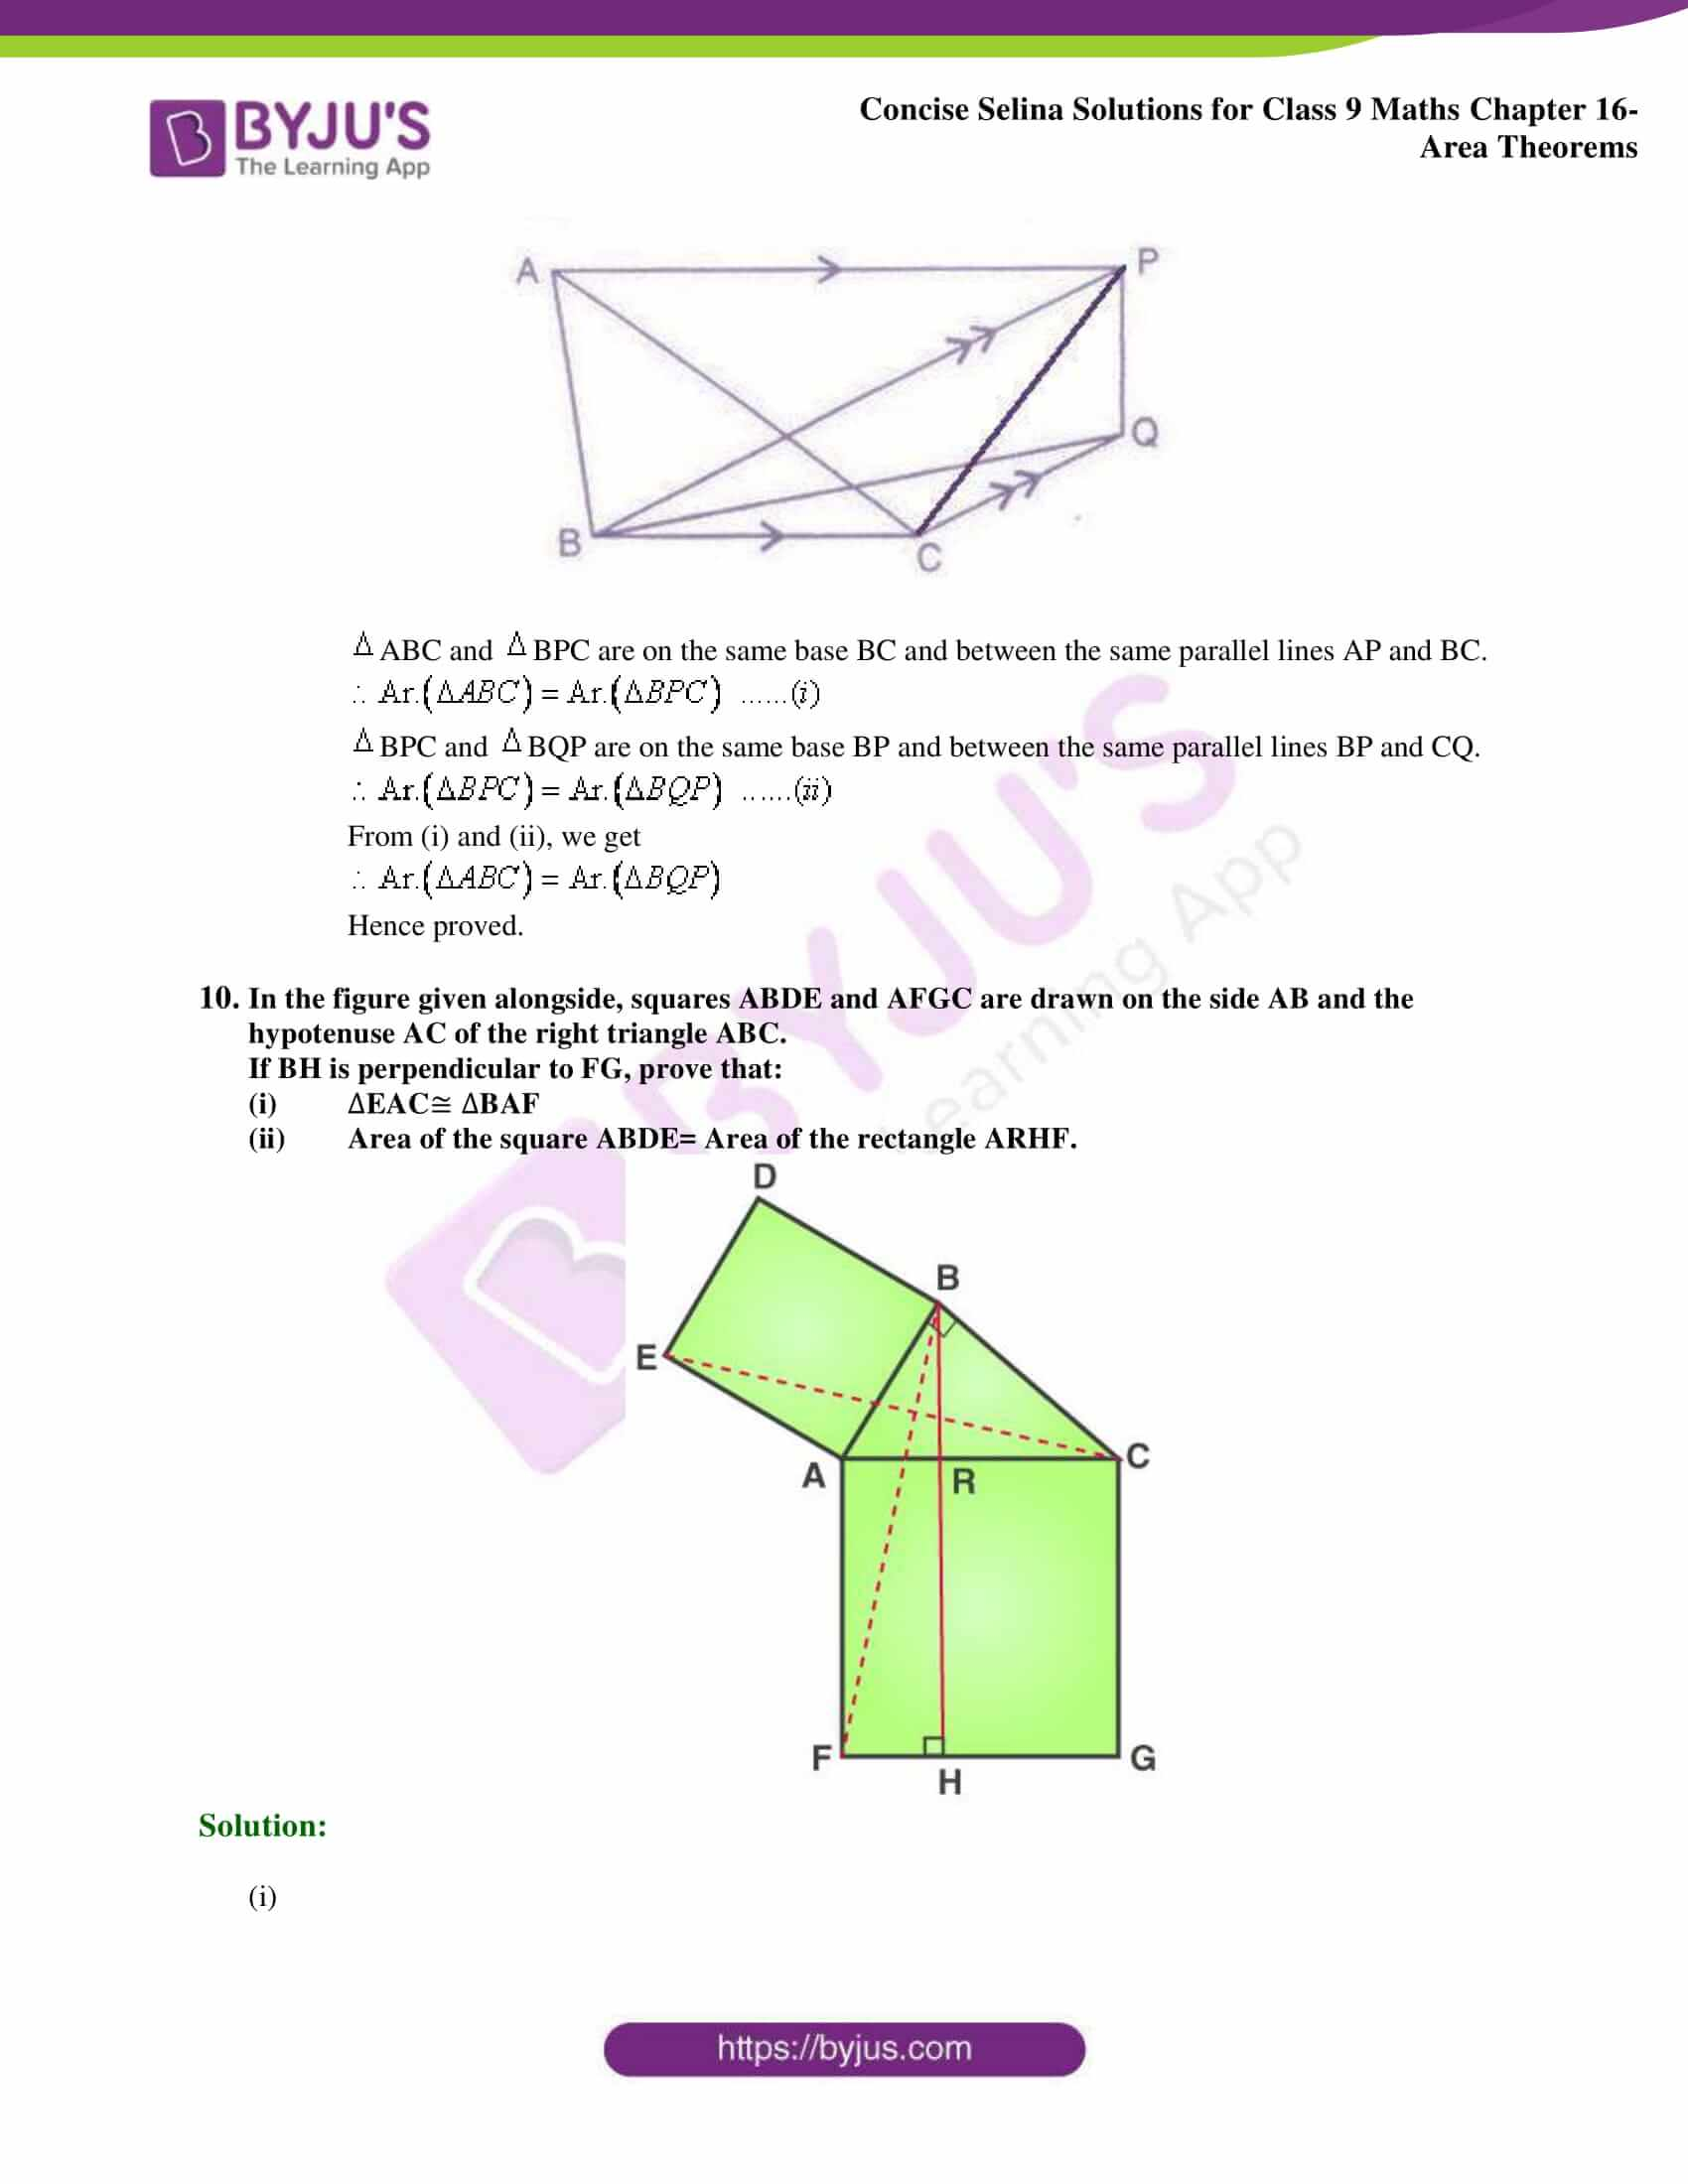 Concise Selina Solutions Class 9 Maths Chapter 16 Area Theorems part 08